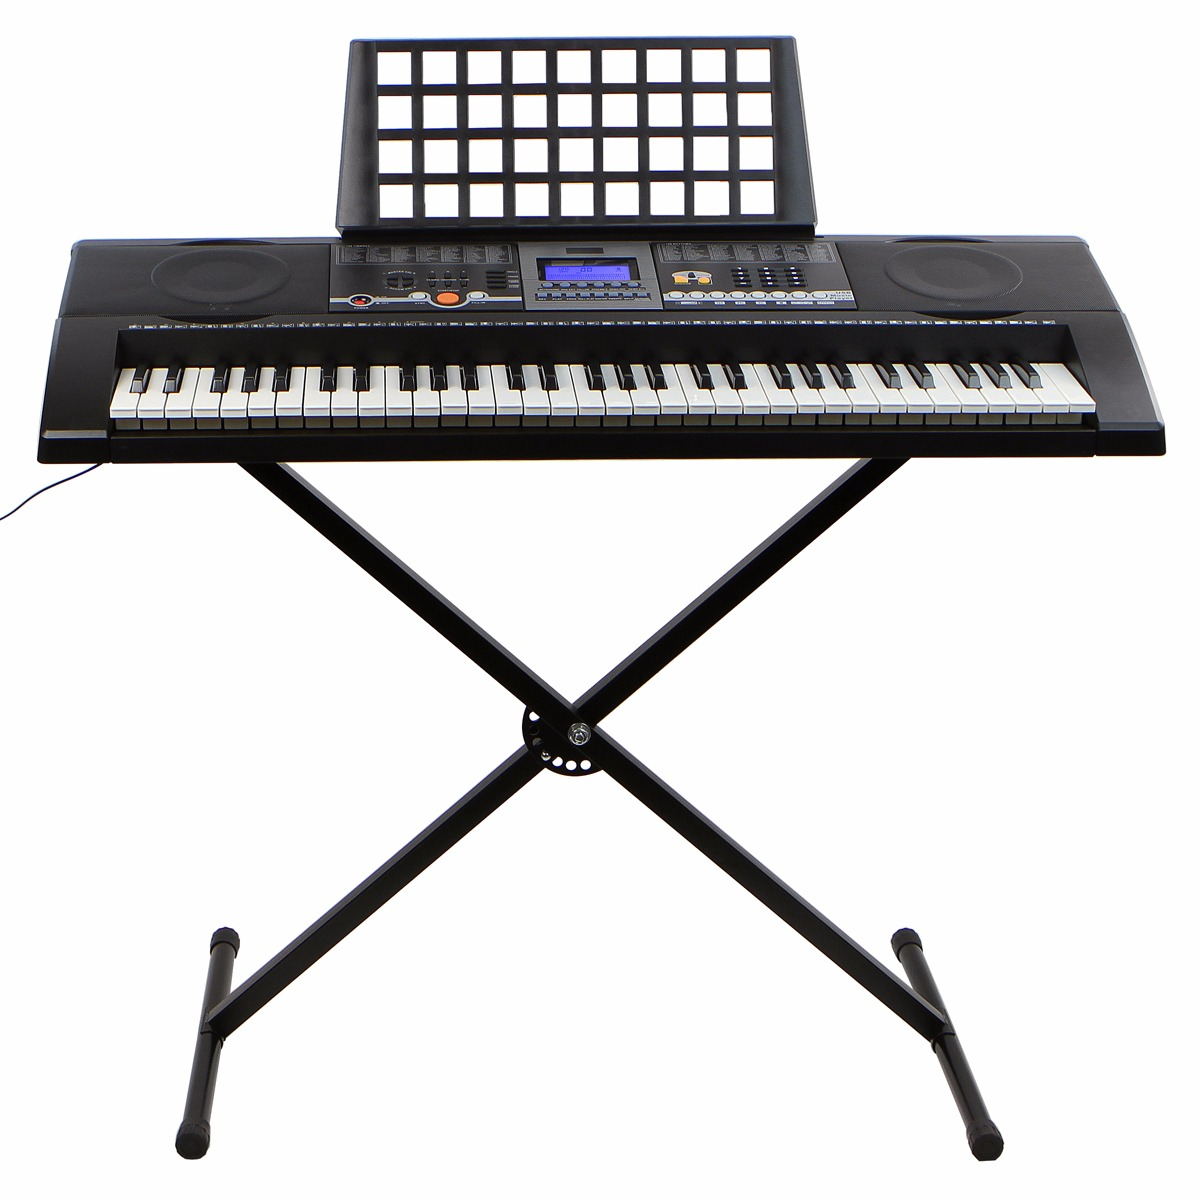 XtremepowerUS 61-Key Electronic Keyboard w/ LCD Display and X Stand – Black